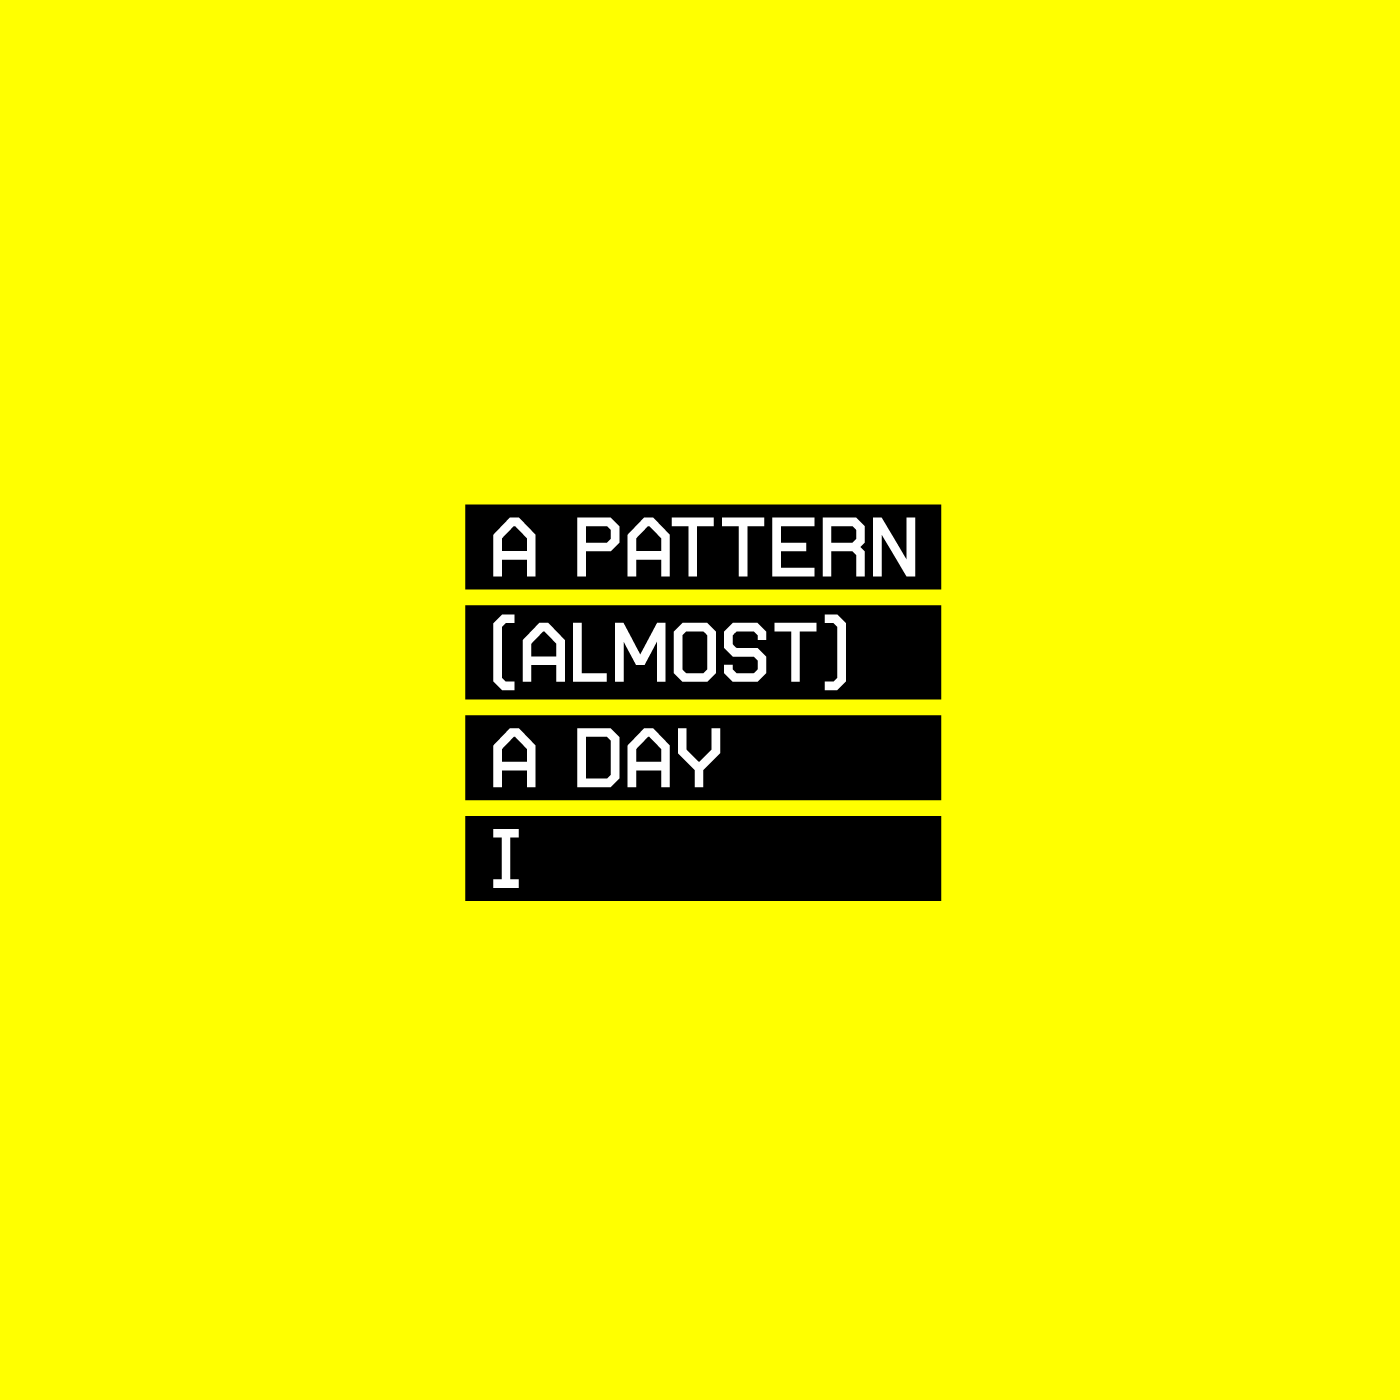 a-pattern-a-day-1-intro-1